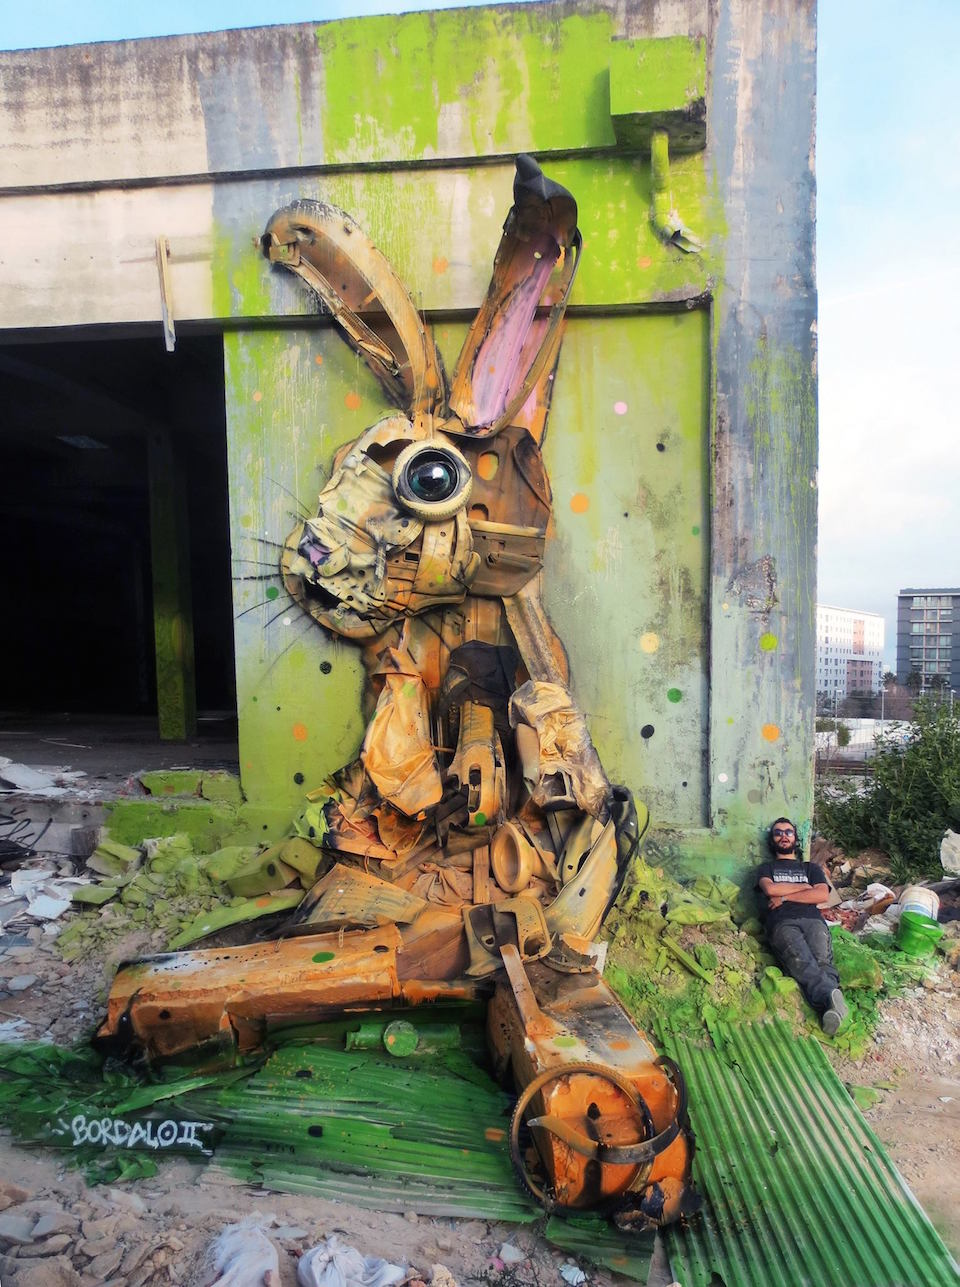 22 photos - A Collection of Street Art by Bordalo II